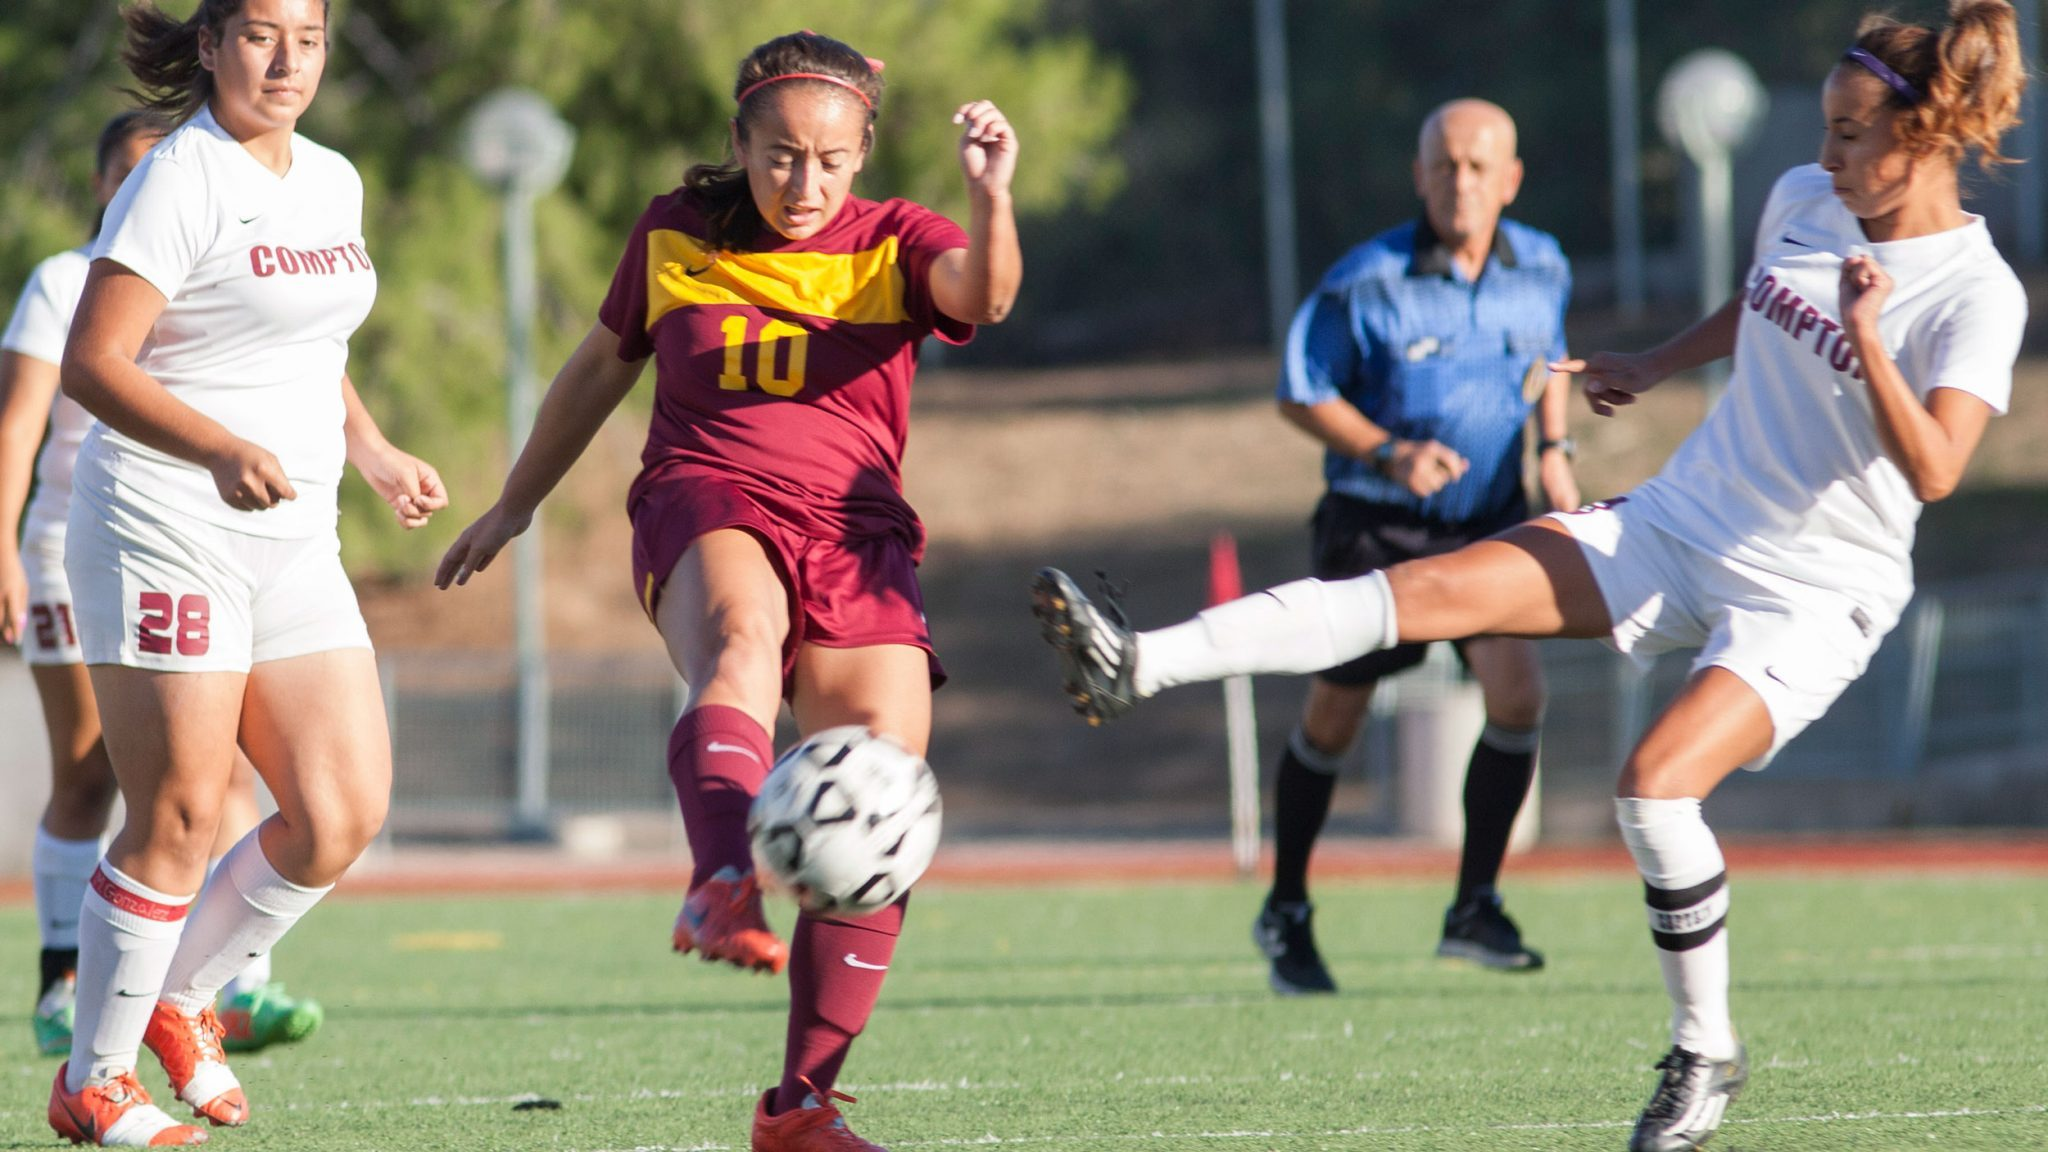 Katja Liebing/Courier Lancer forward Elena Heuze attempts a header at Robinson Stadium in a conference game against ECC Compton at Pasadena City College on Friday, November 6, 2015.